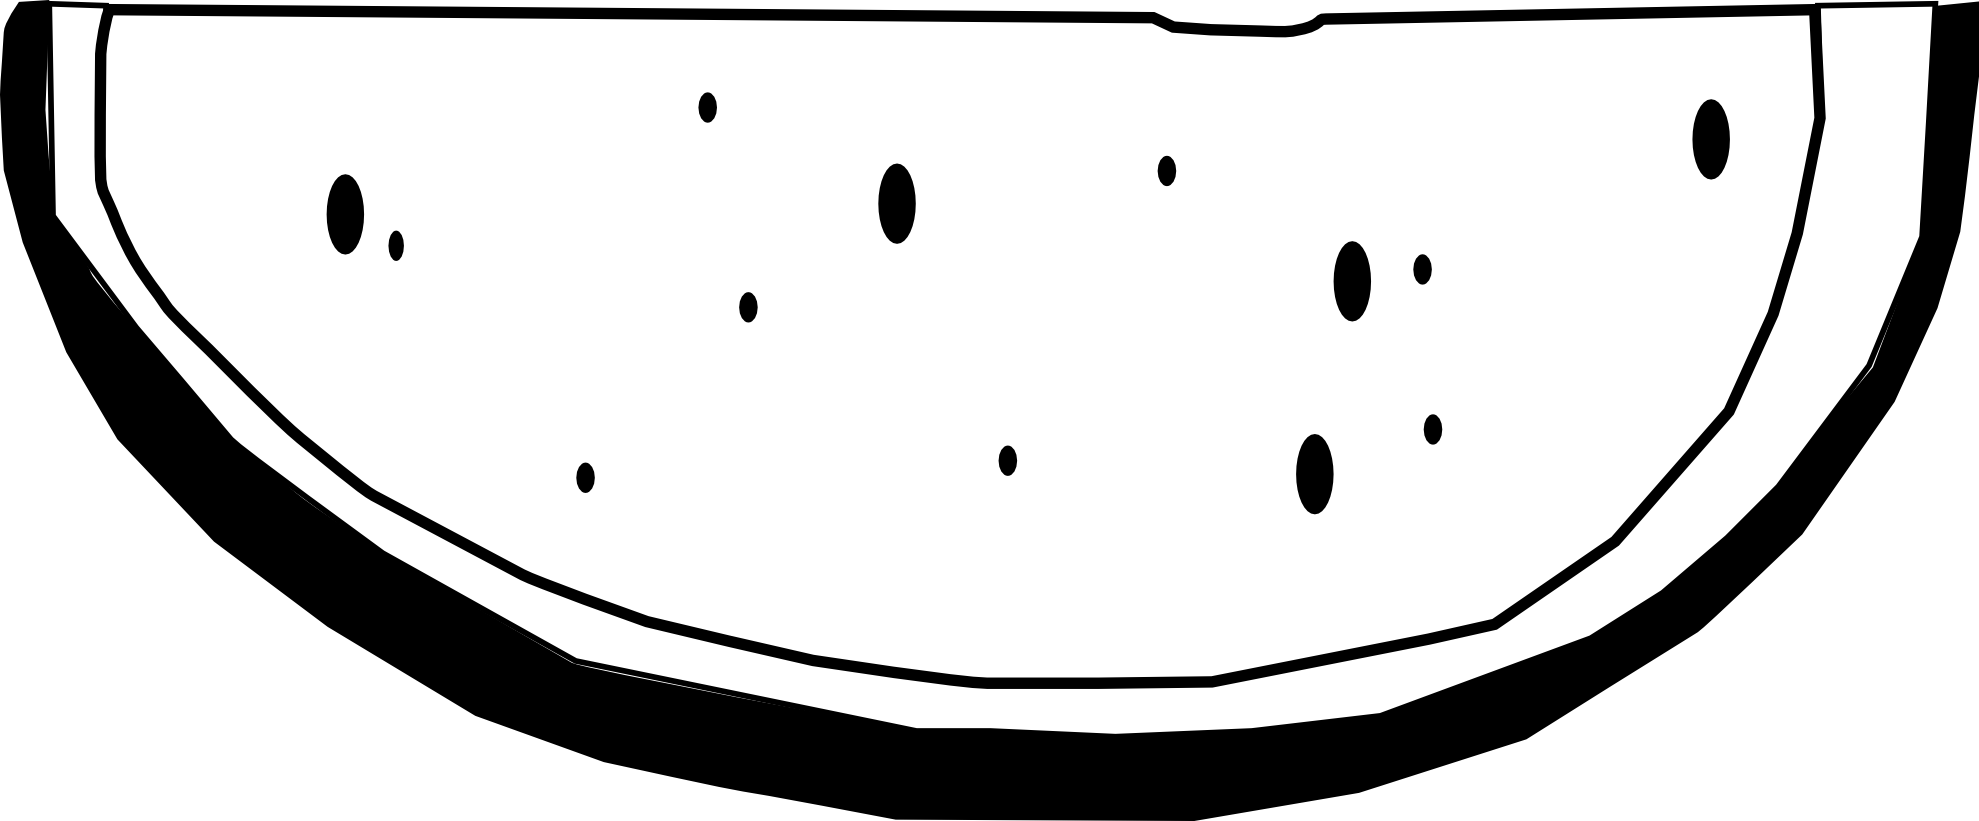 Watermelon clipart black and white  Slice Clipart White Image